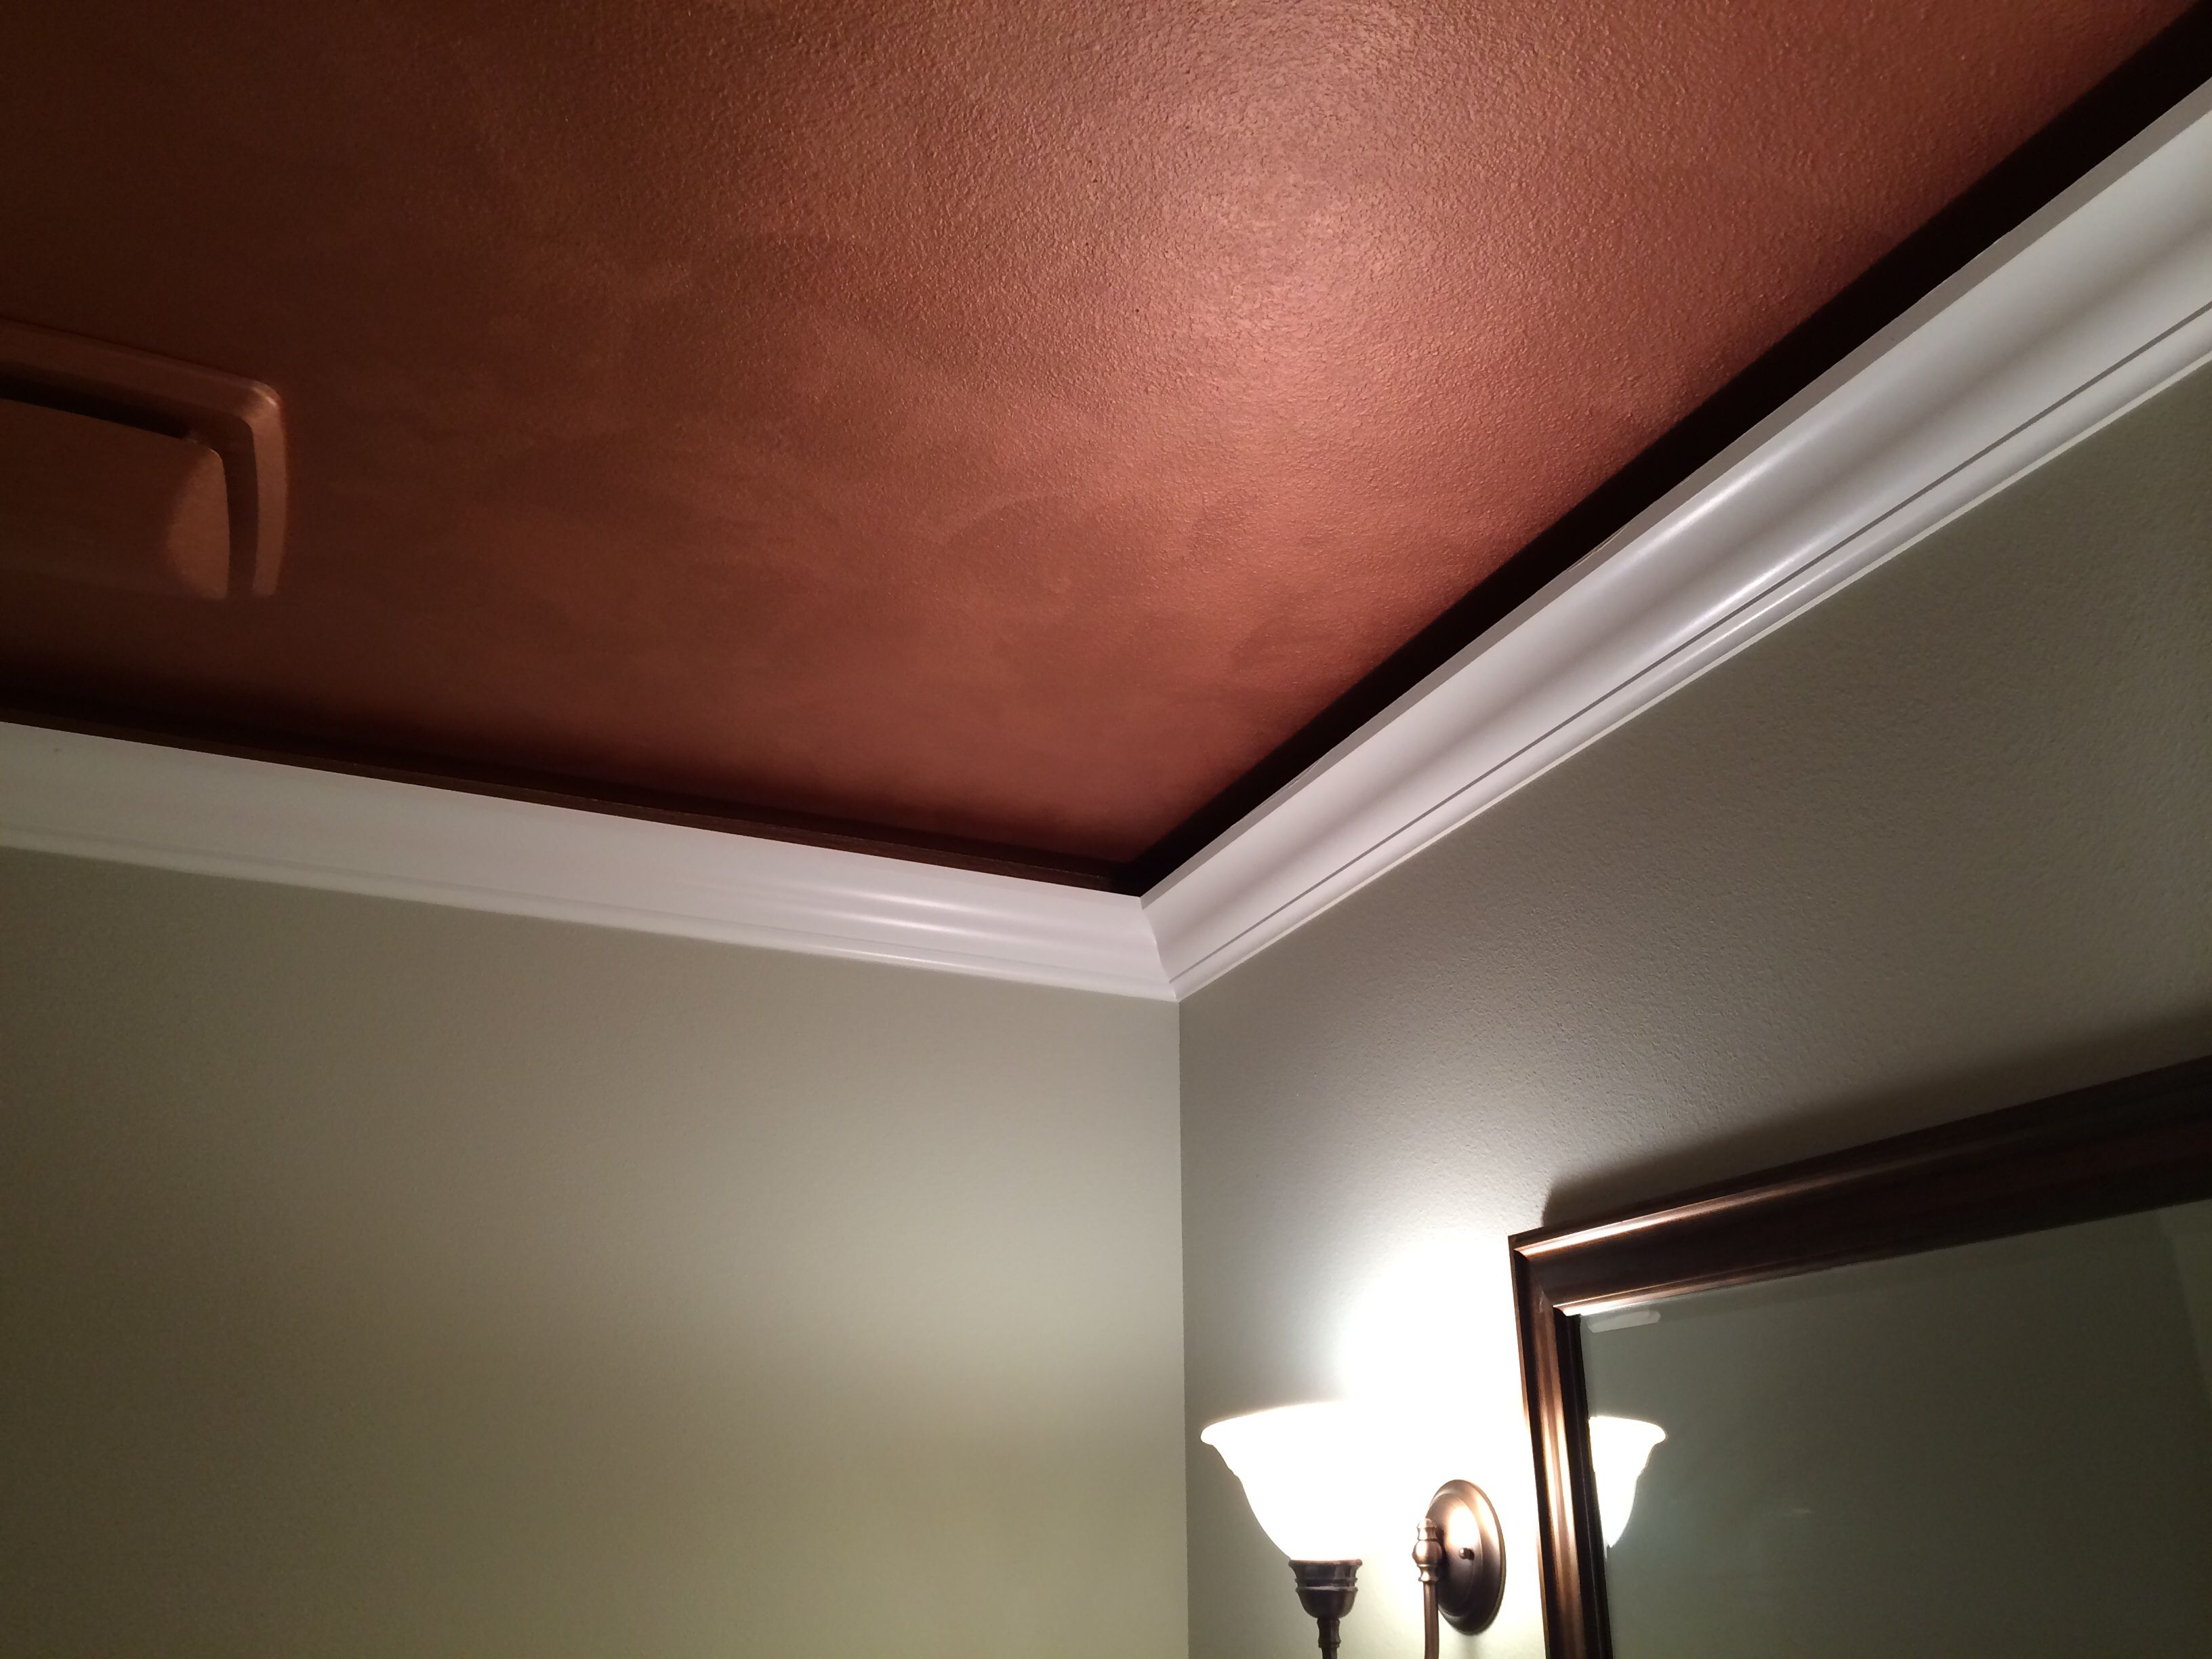 Bathroom Ceiling Gap Between Crown Molding Copper Gorgeous From My Friend Rosemary